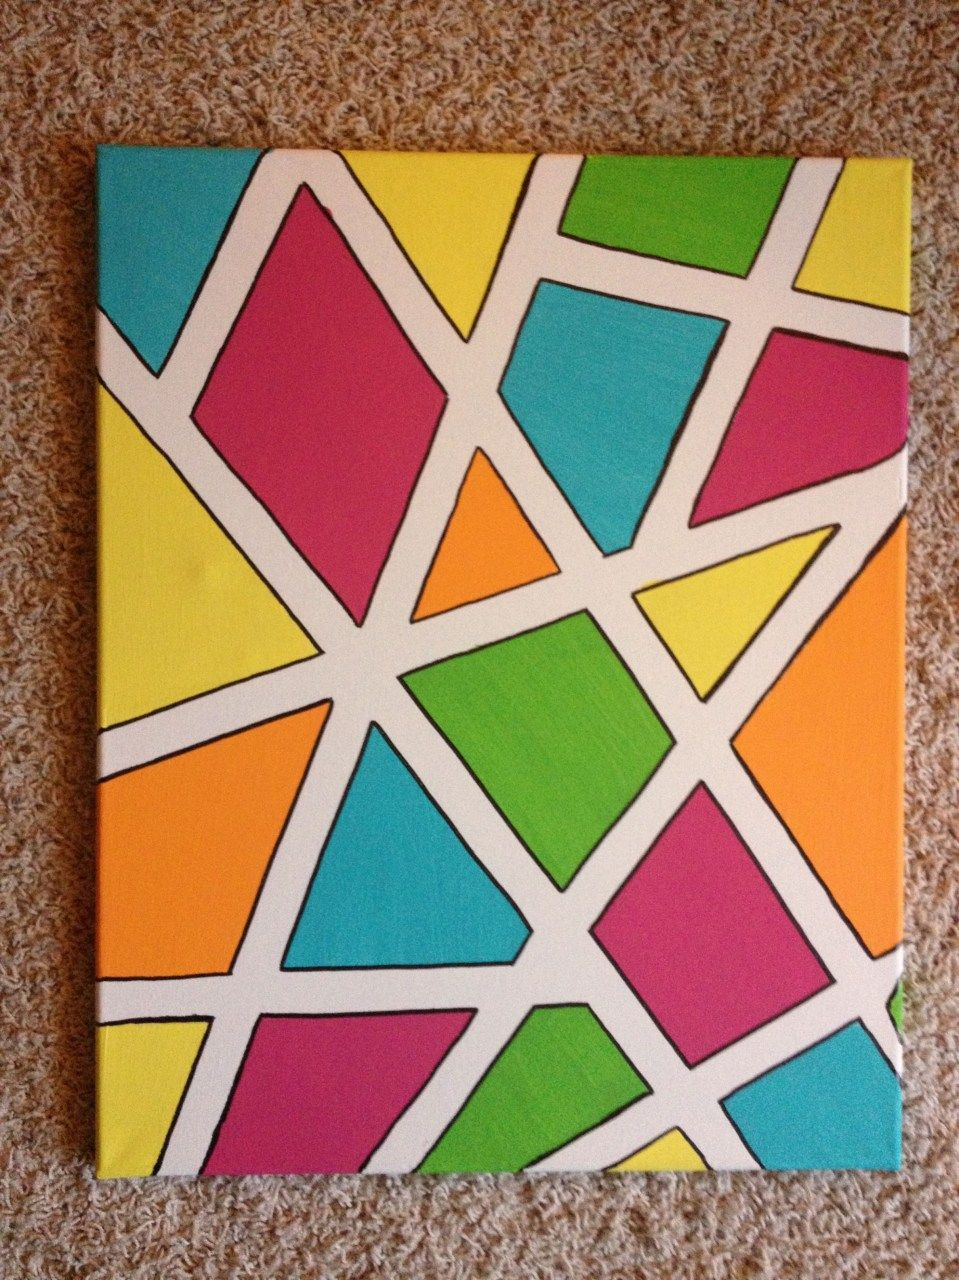 9 Painters Tape Art Rituals You Should Know In 9 Painters Tape Art Painters Tape Art Tape Art Masking Tape Art